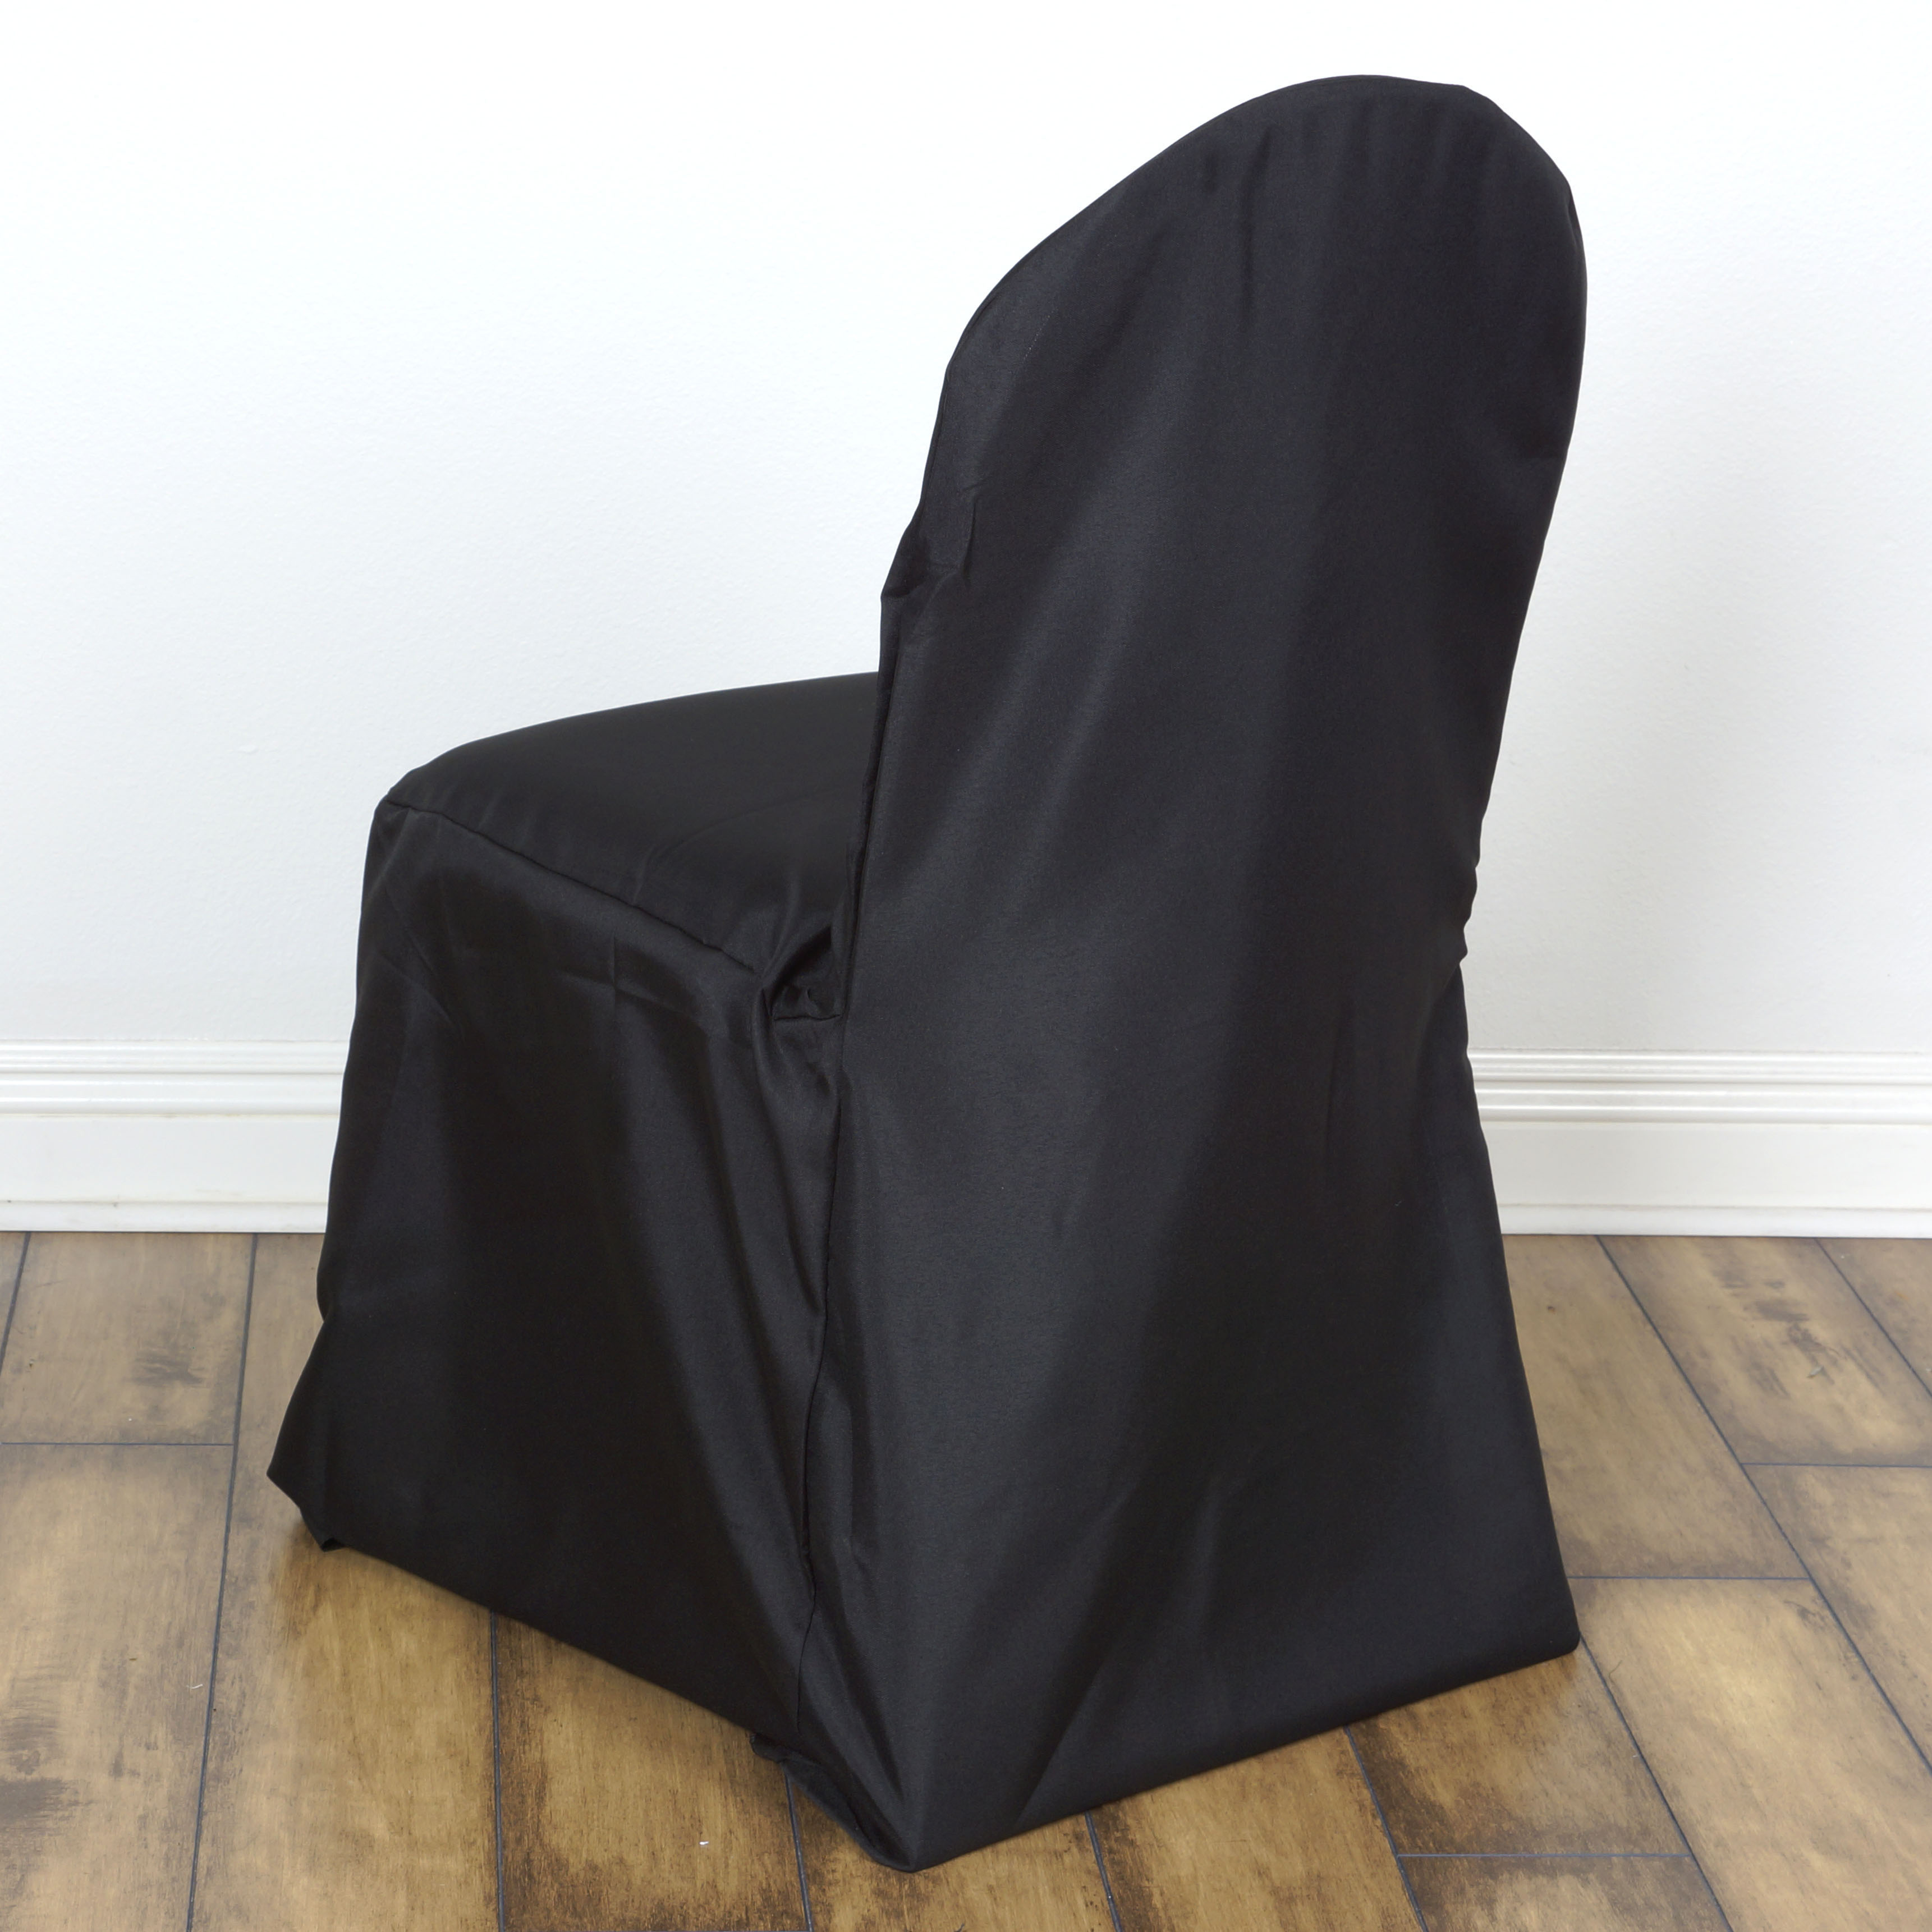 50 pcs Polyester Banquet CHAIR COVERS Wedding Reception Party Supplies Wholes